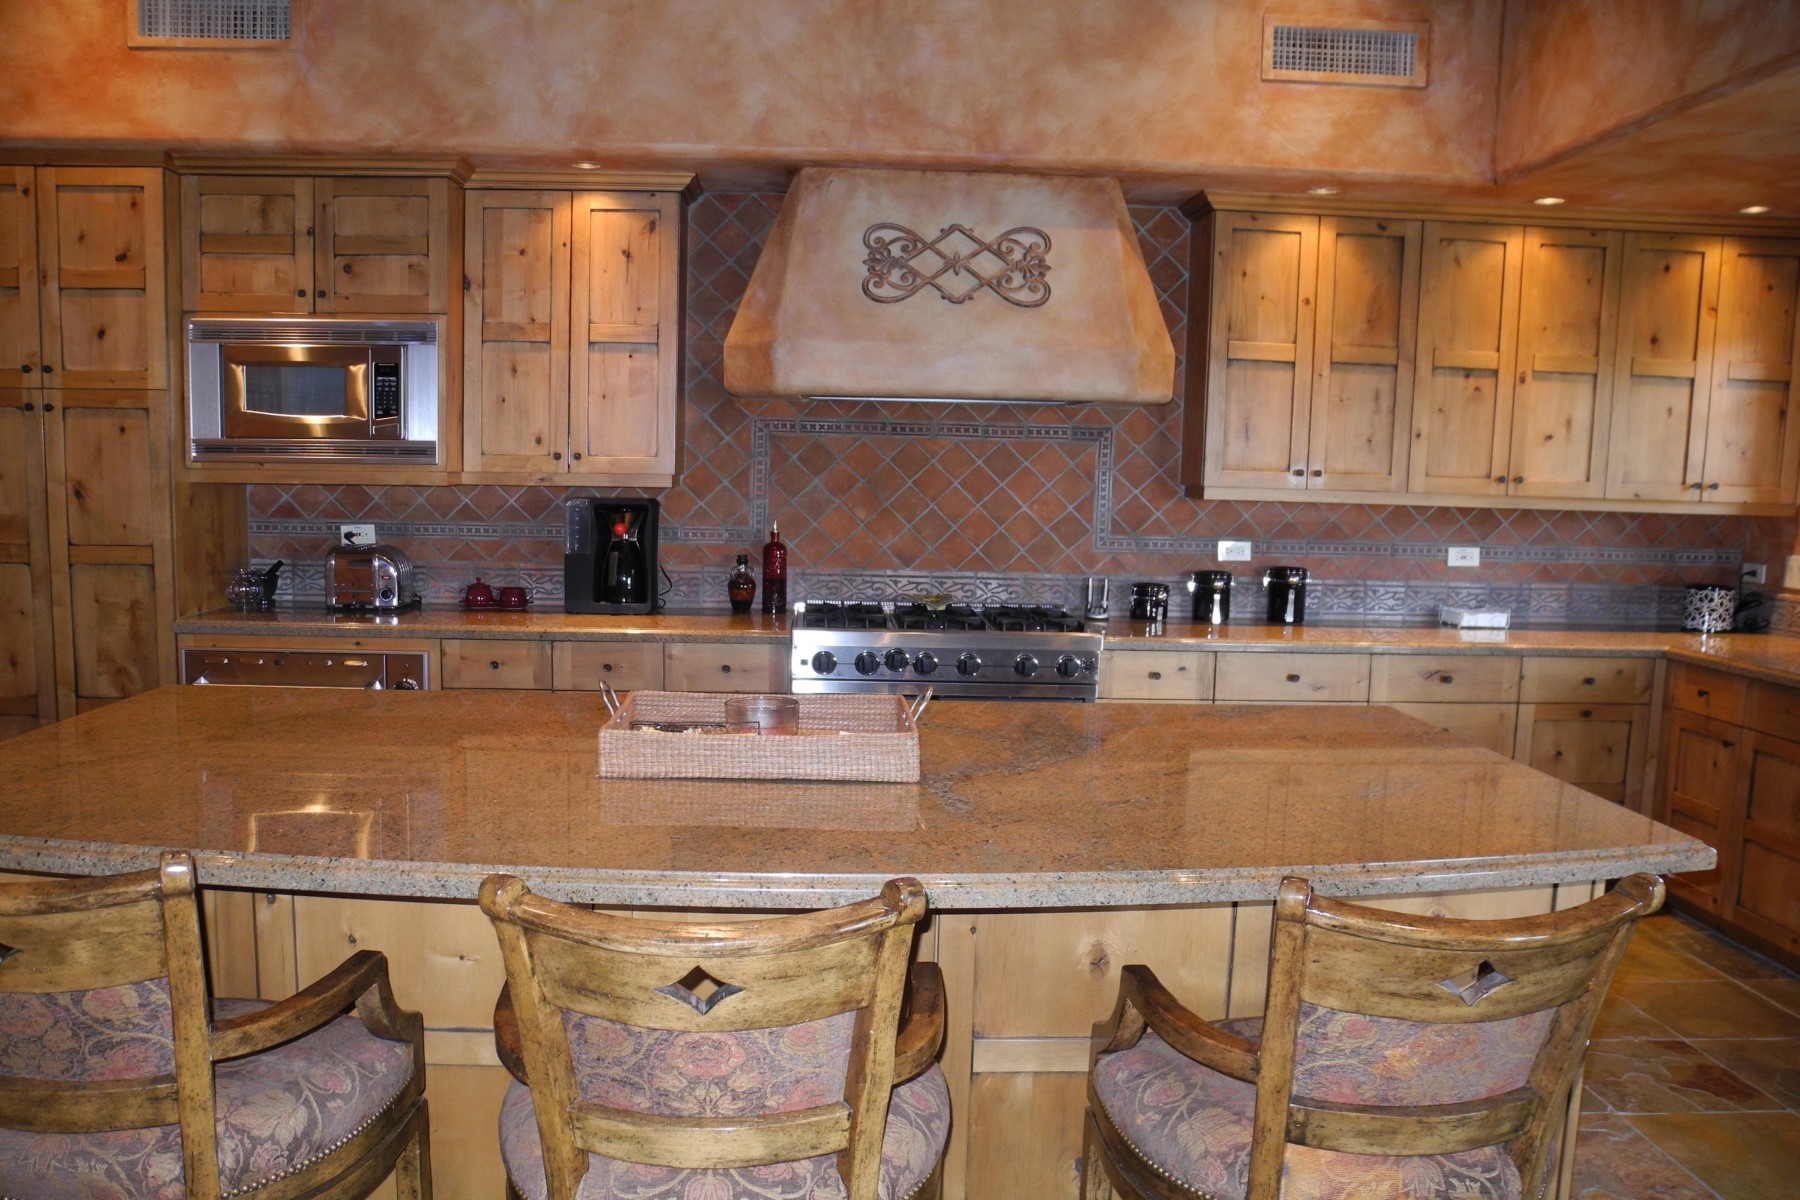 Property Of Nicely furnished home with best of finishes